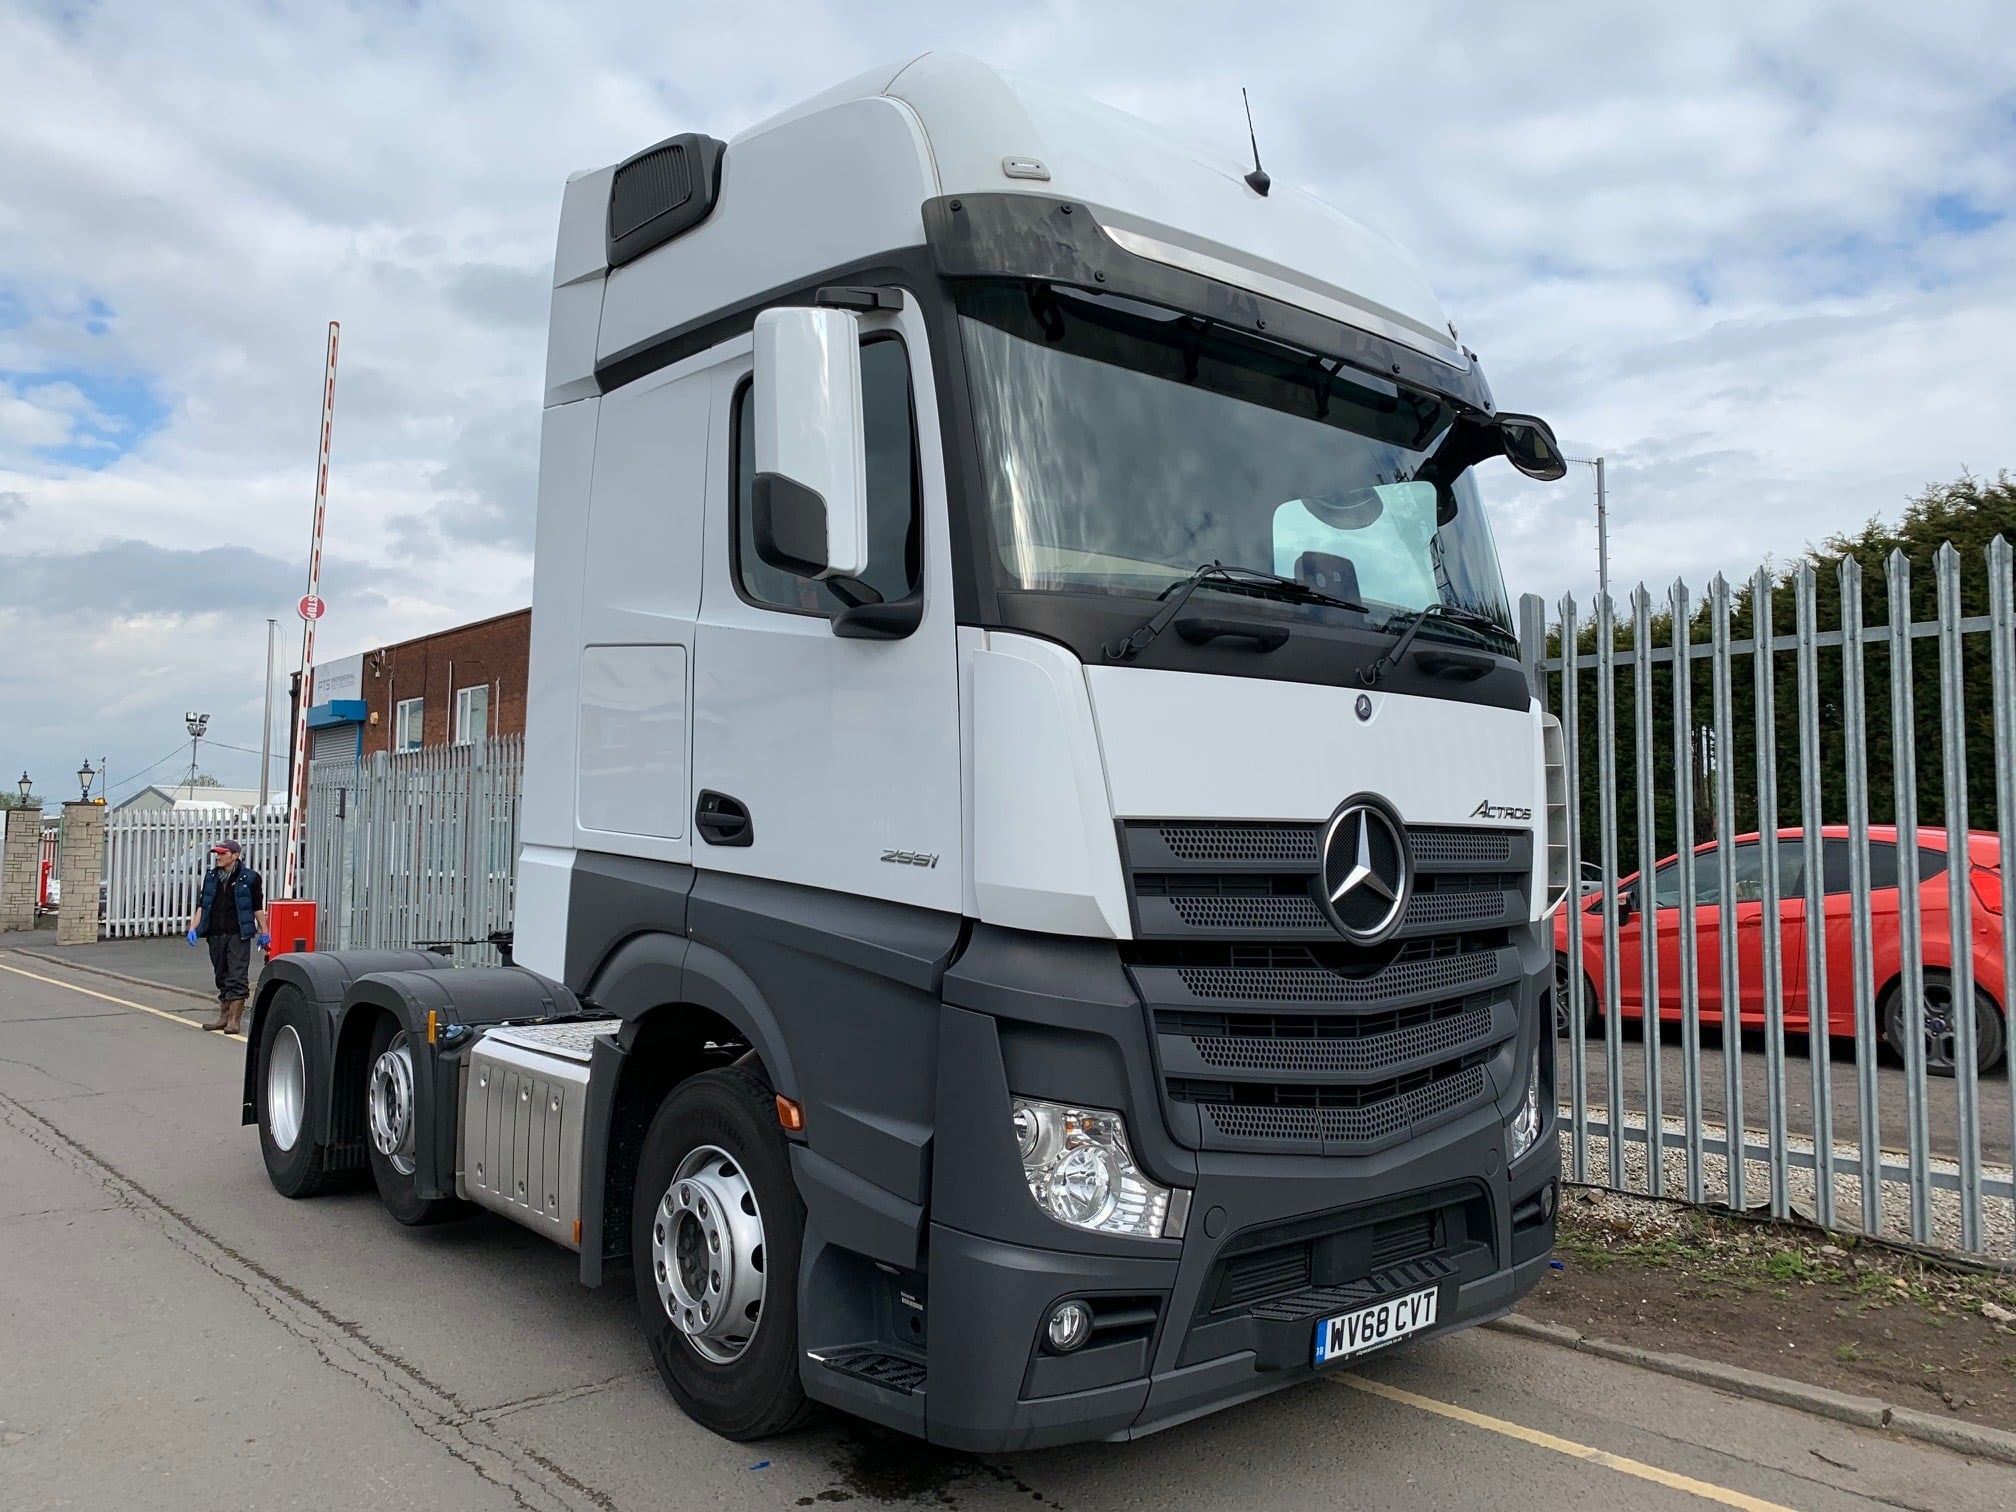 2018 (68) Mercedes Actros 2551, Euro 6, 510bhp, Gigaspace Sleeper Cab, 4m Wheelbase, Automatic Gearbox, Air Con, Cruise Control, Steering Wheel Controls, Radio/USB, Fridge, Choice & Warranty Available.